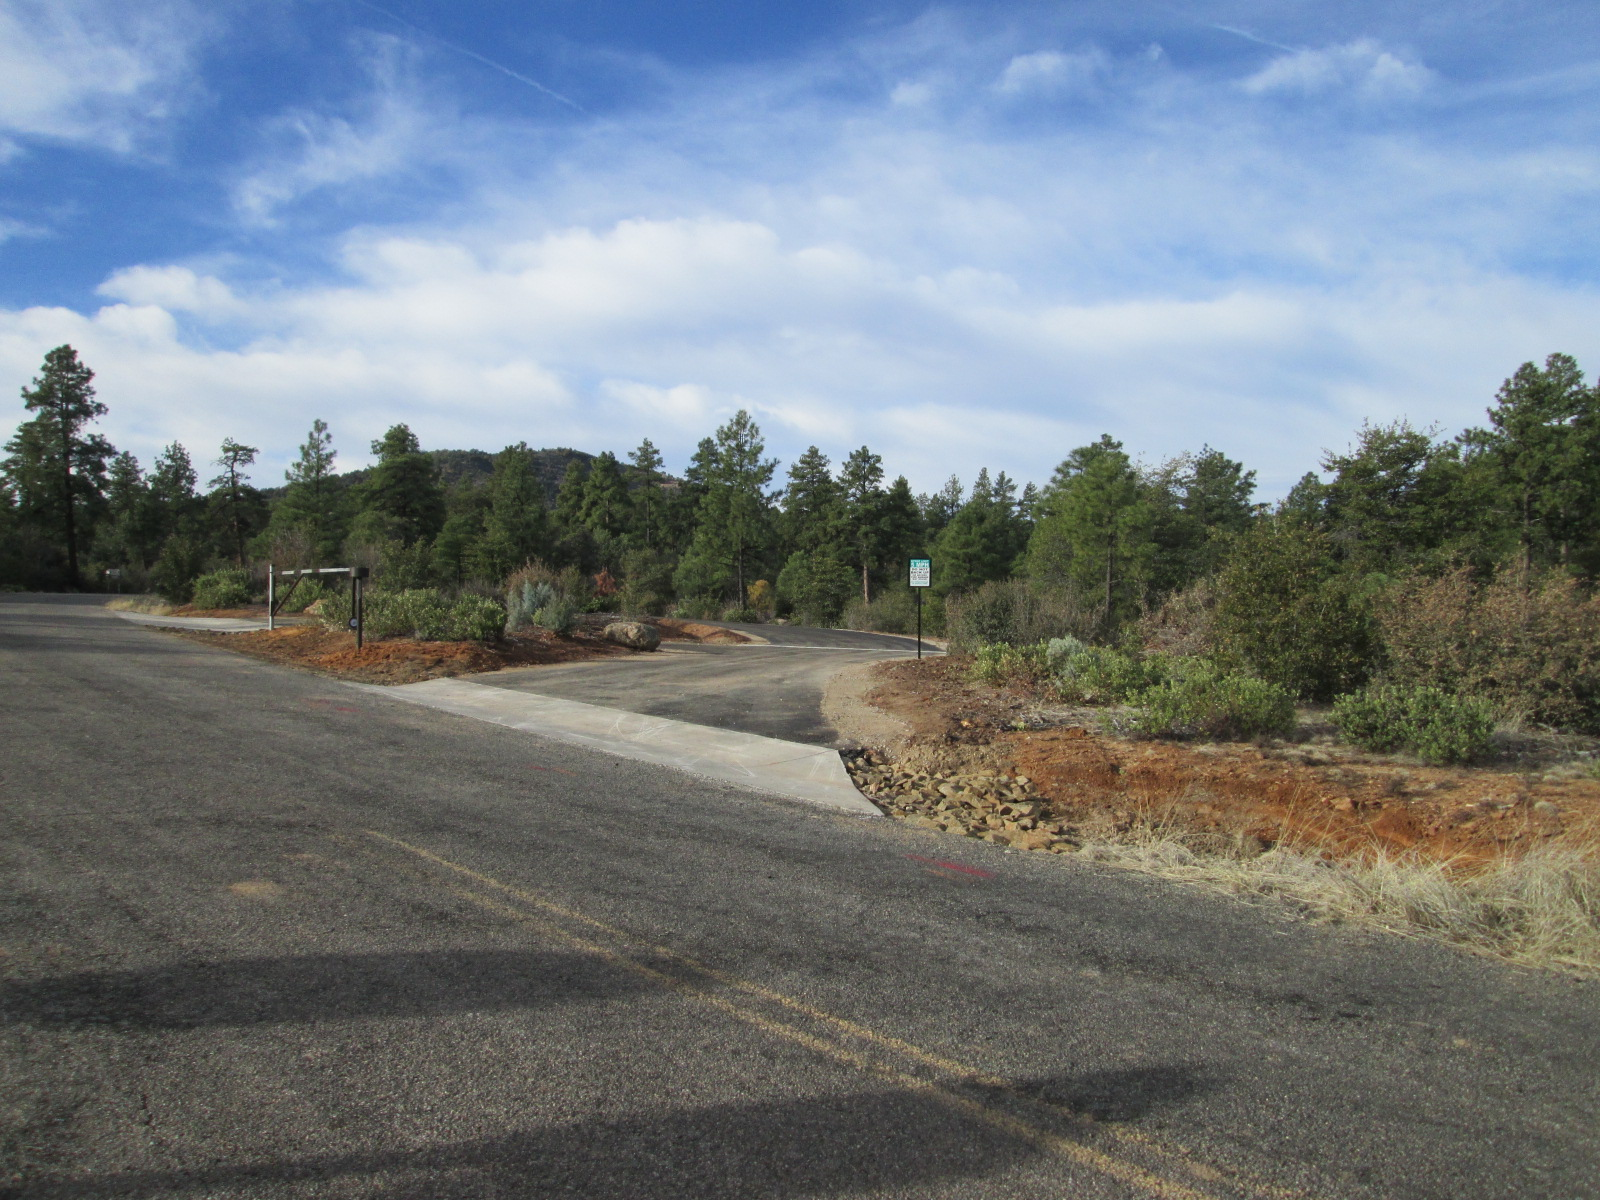 Forest Service New Gate On Road Entering Granite Basin Recreation Area